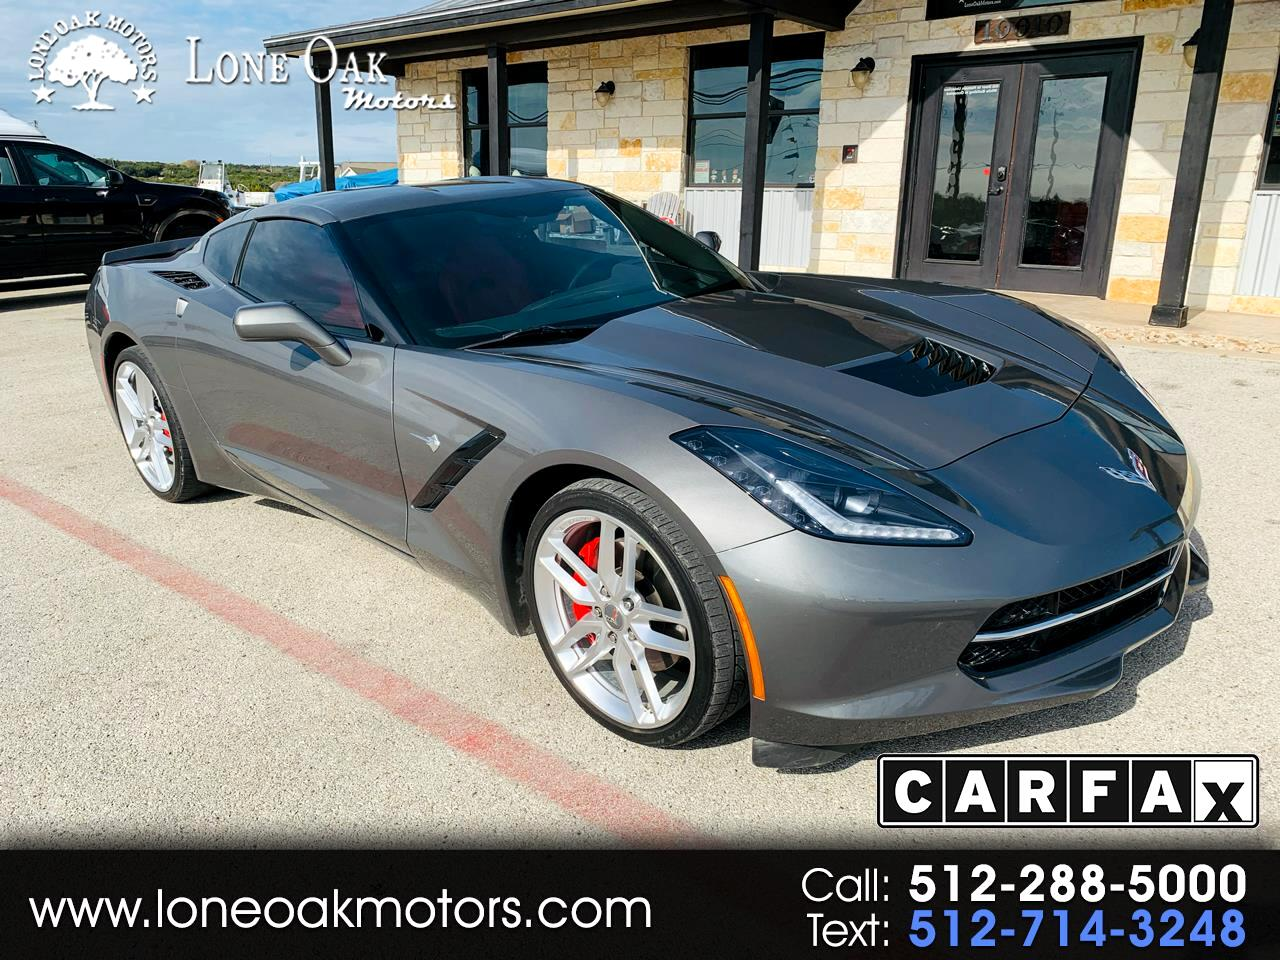 Chevrolet Corvette Stingray 2LT Coupe Automatic 2015